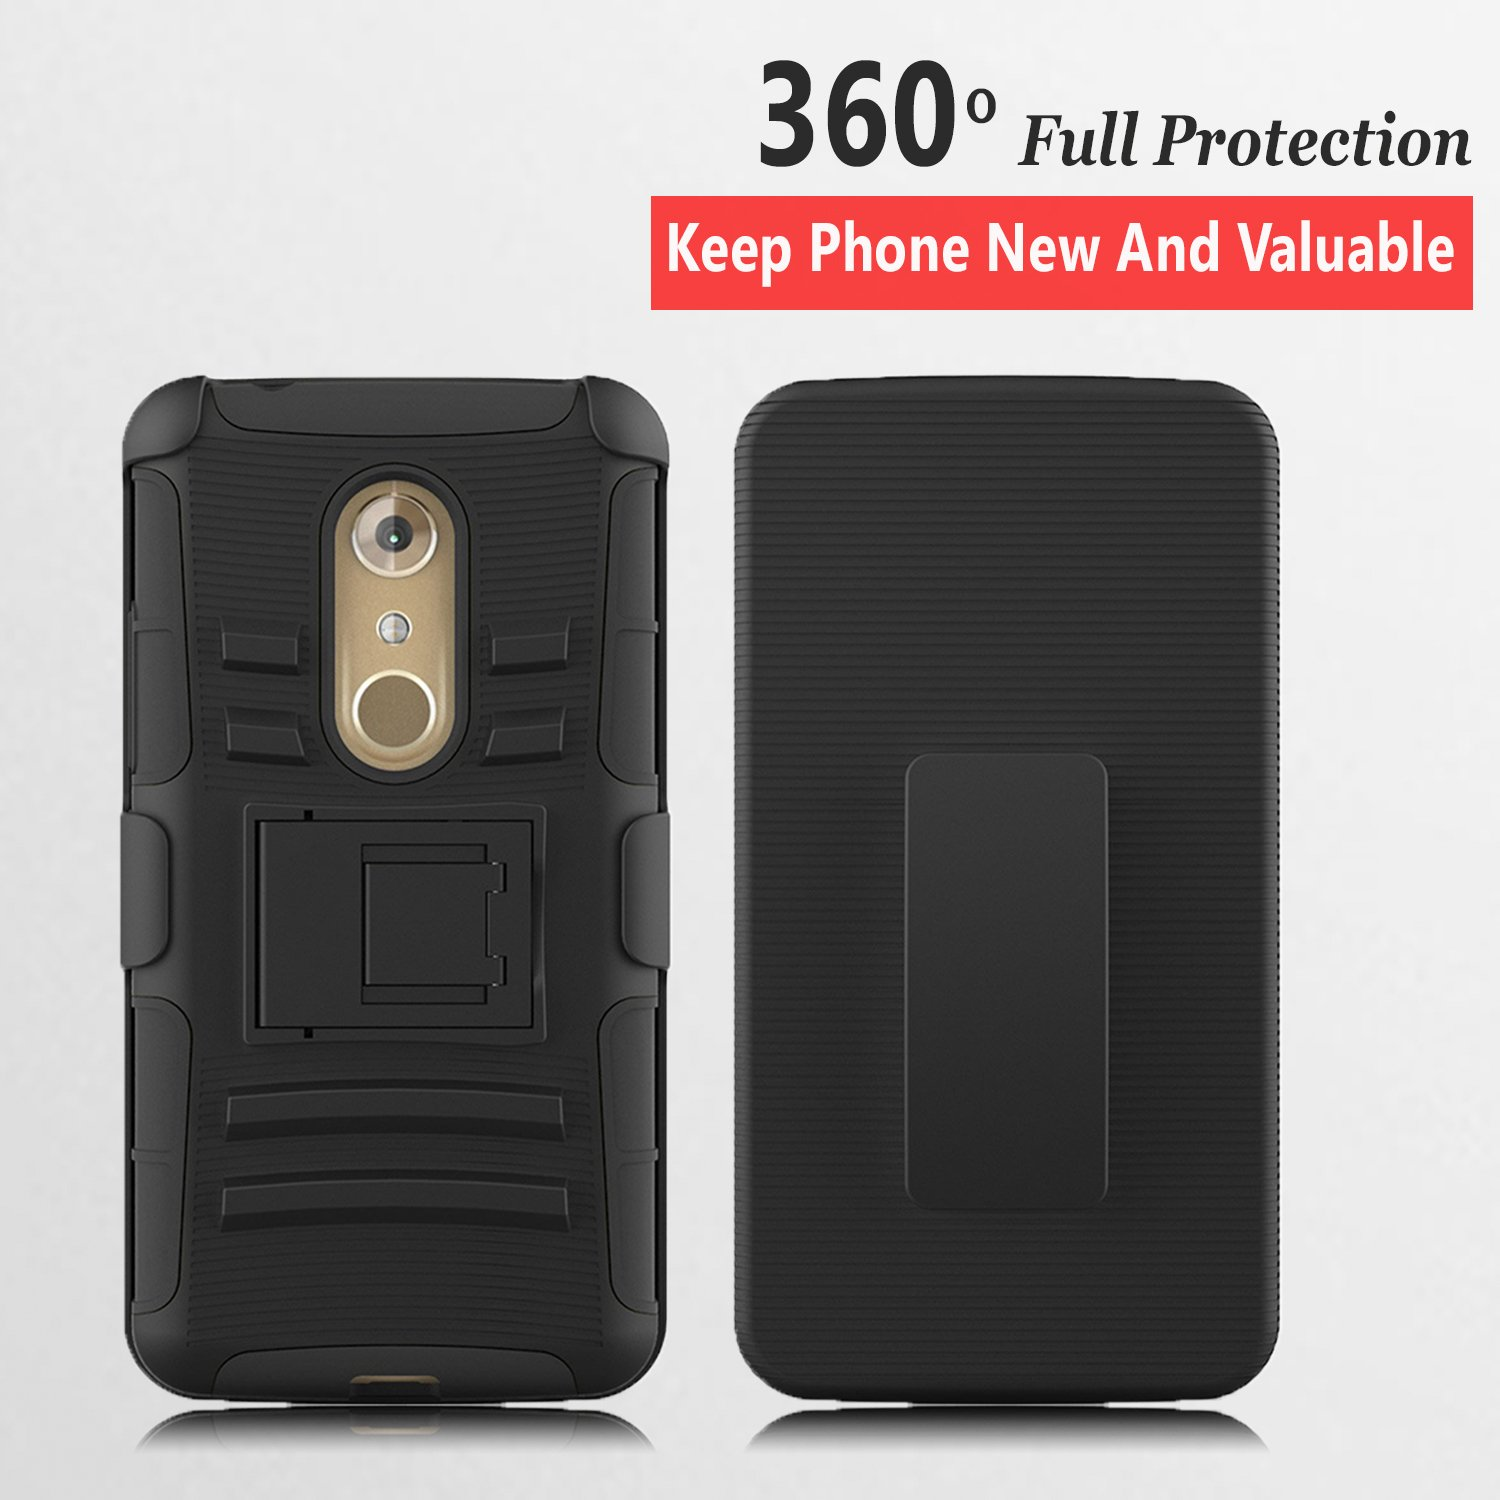 Best Top 5 Cases Amp Cover For Zte Blade V8 Pro Gadgets Finder